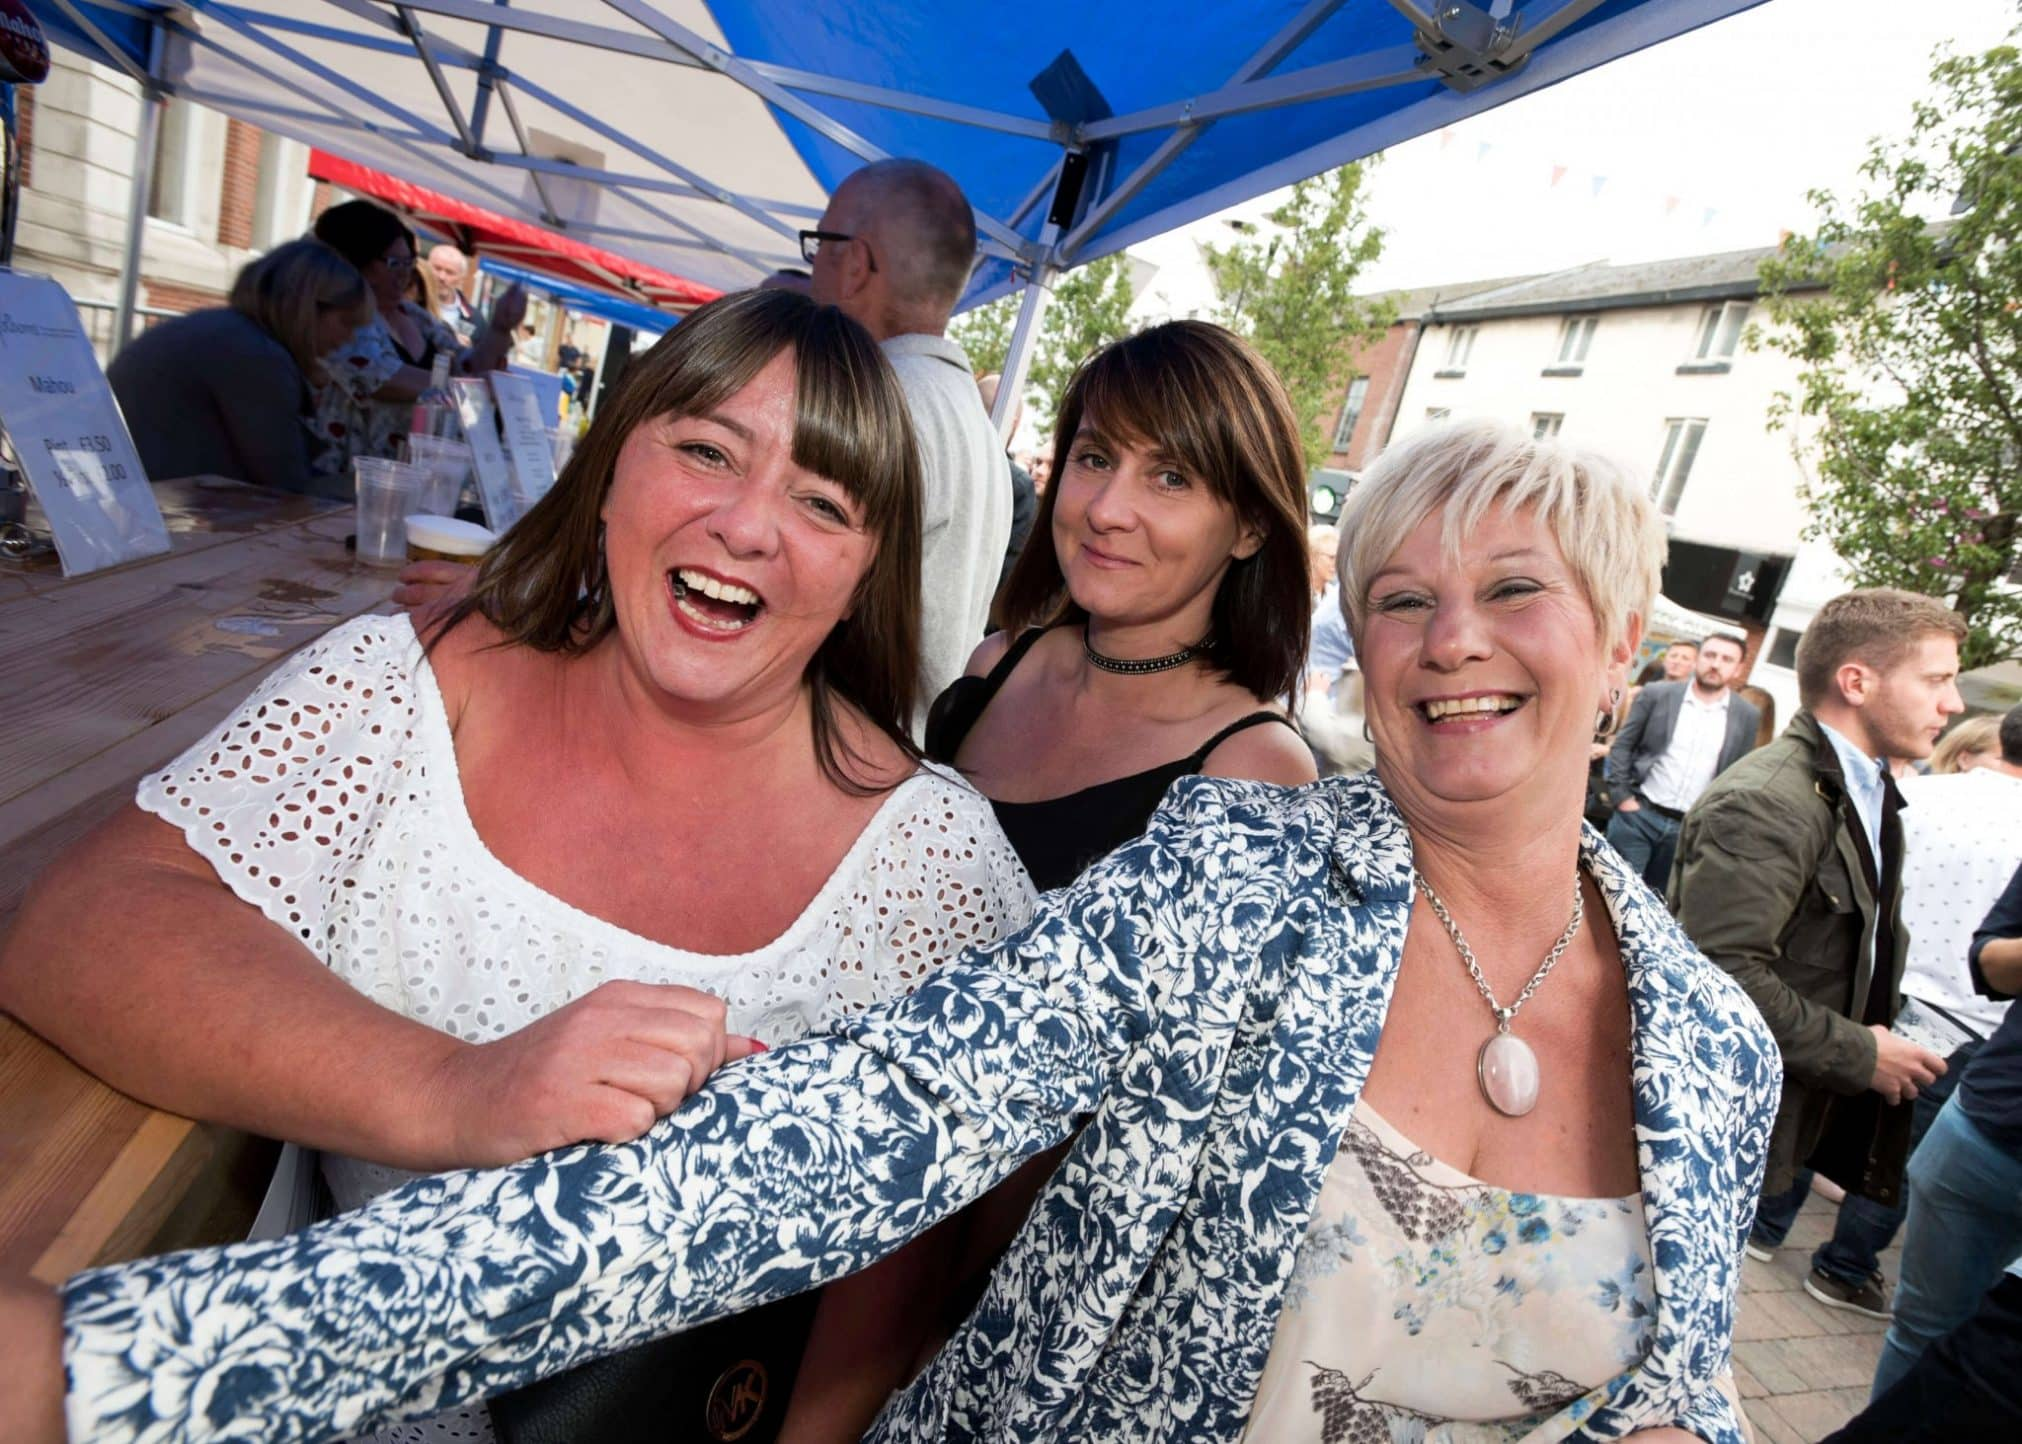 Carla, Kelly and Kath have a ball at Moor St Night Market